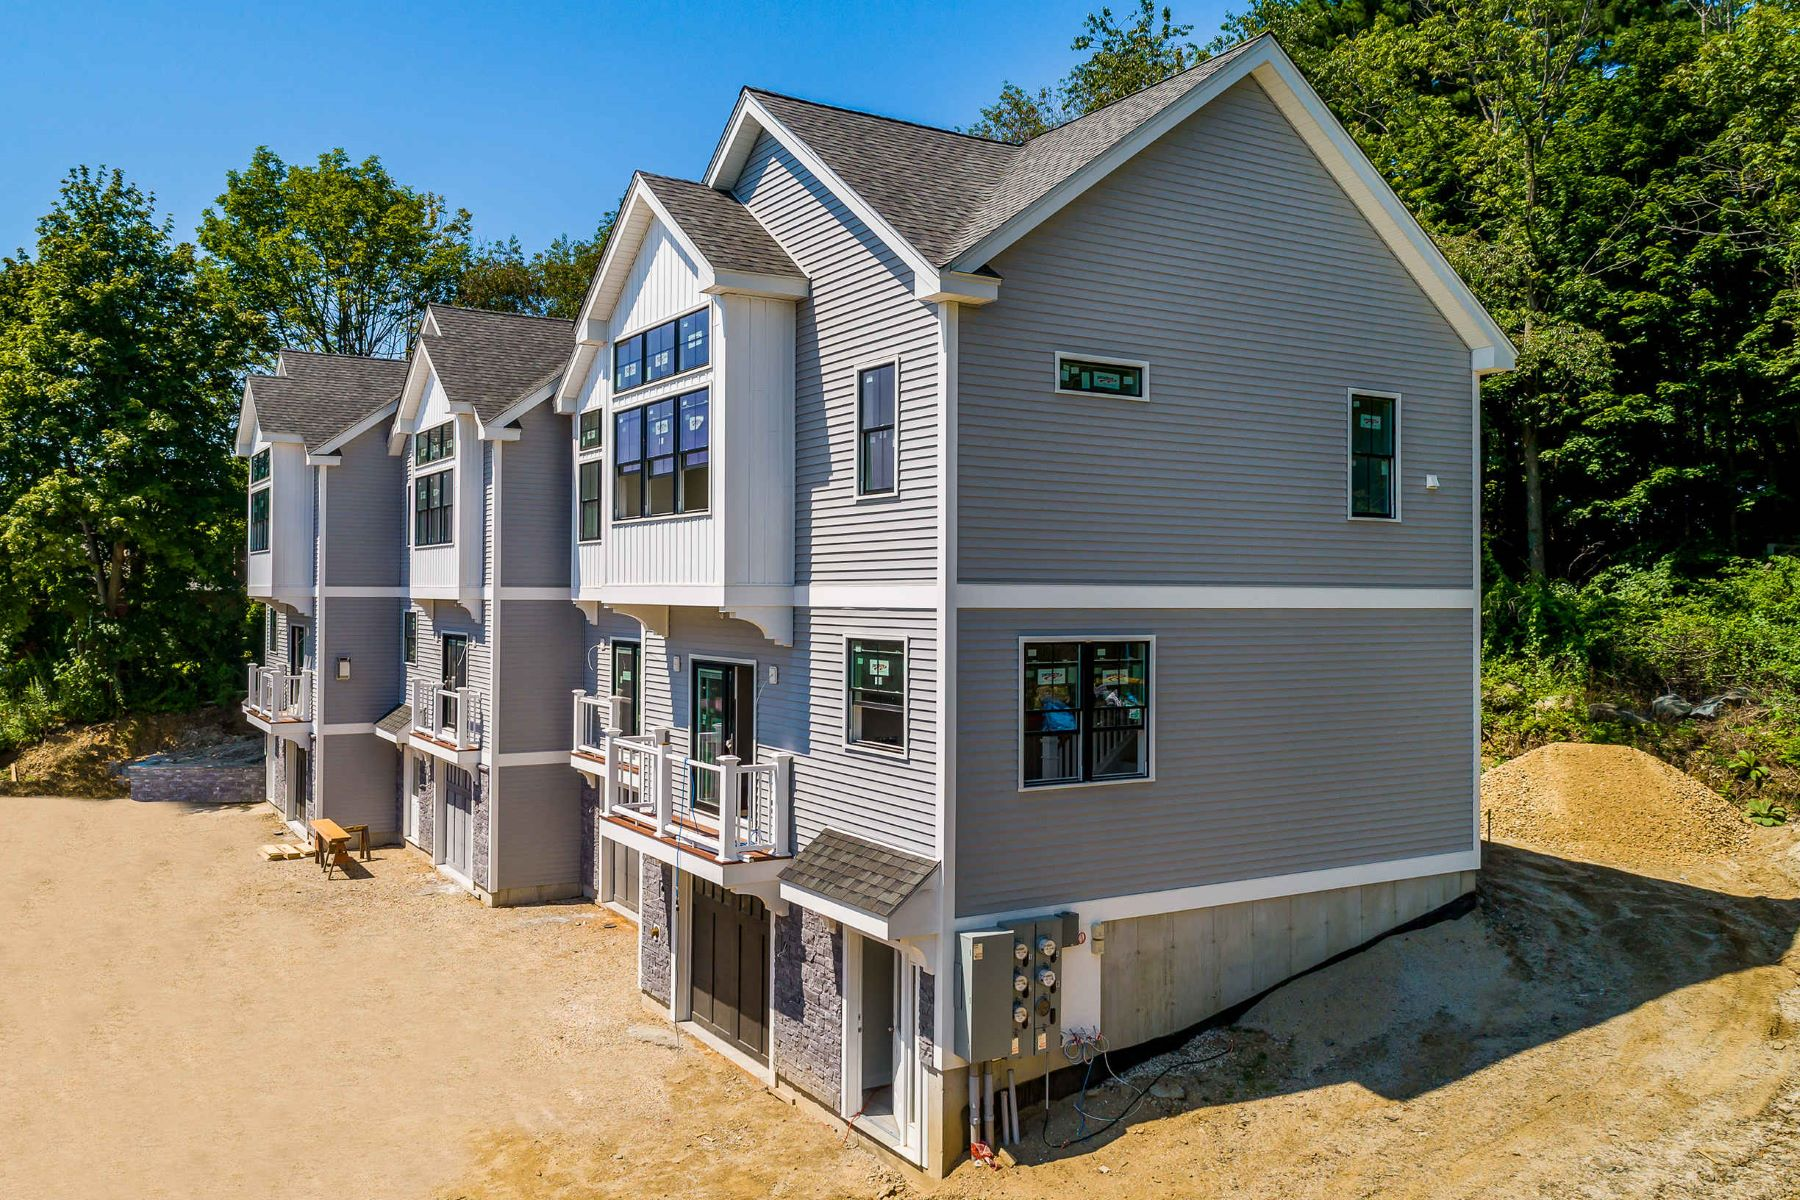 Condominiums for Active at Newly Constructed Condominium in Kittery Foreside 12 Bridge Street Unit 2 Kittery, Maine 03904 United States